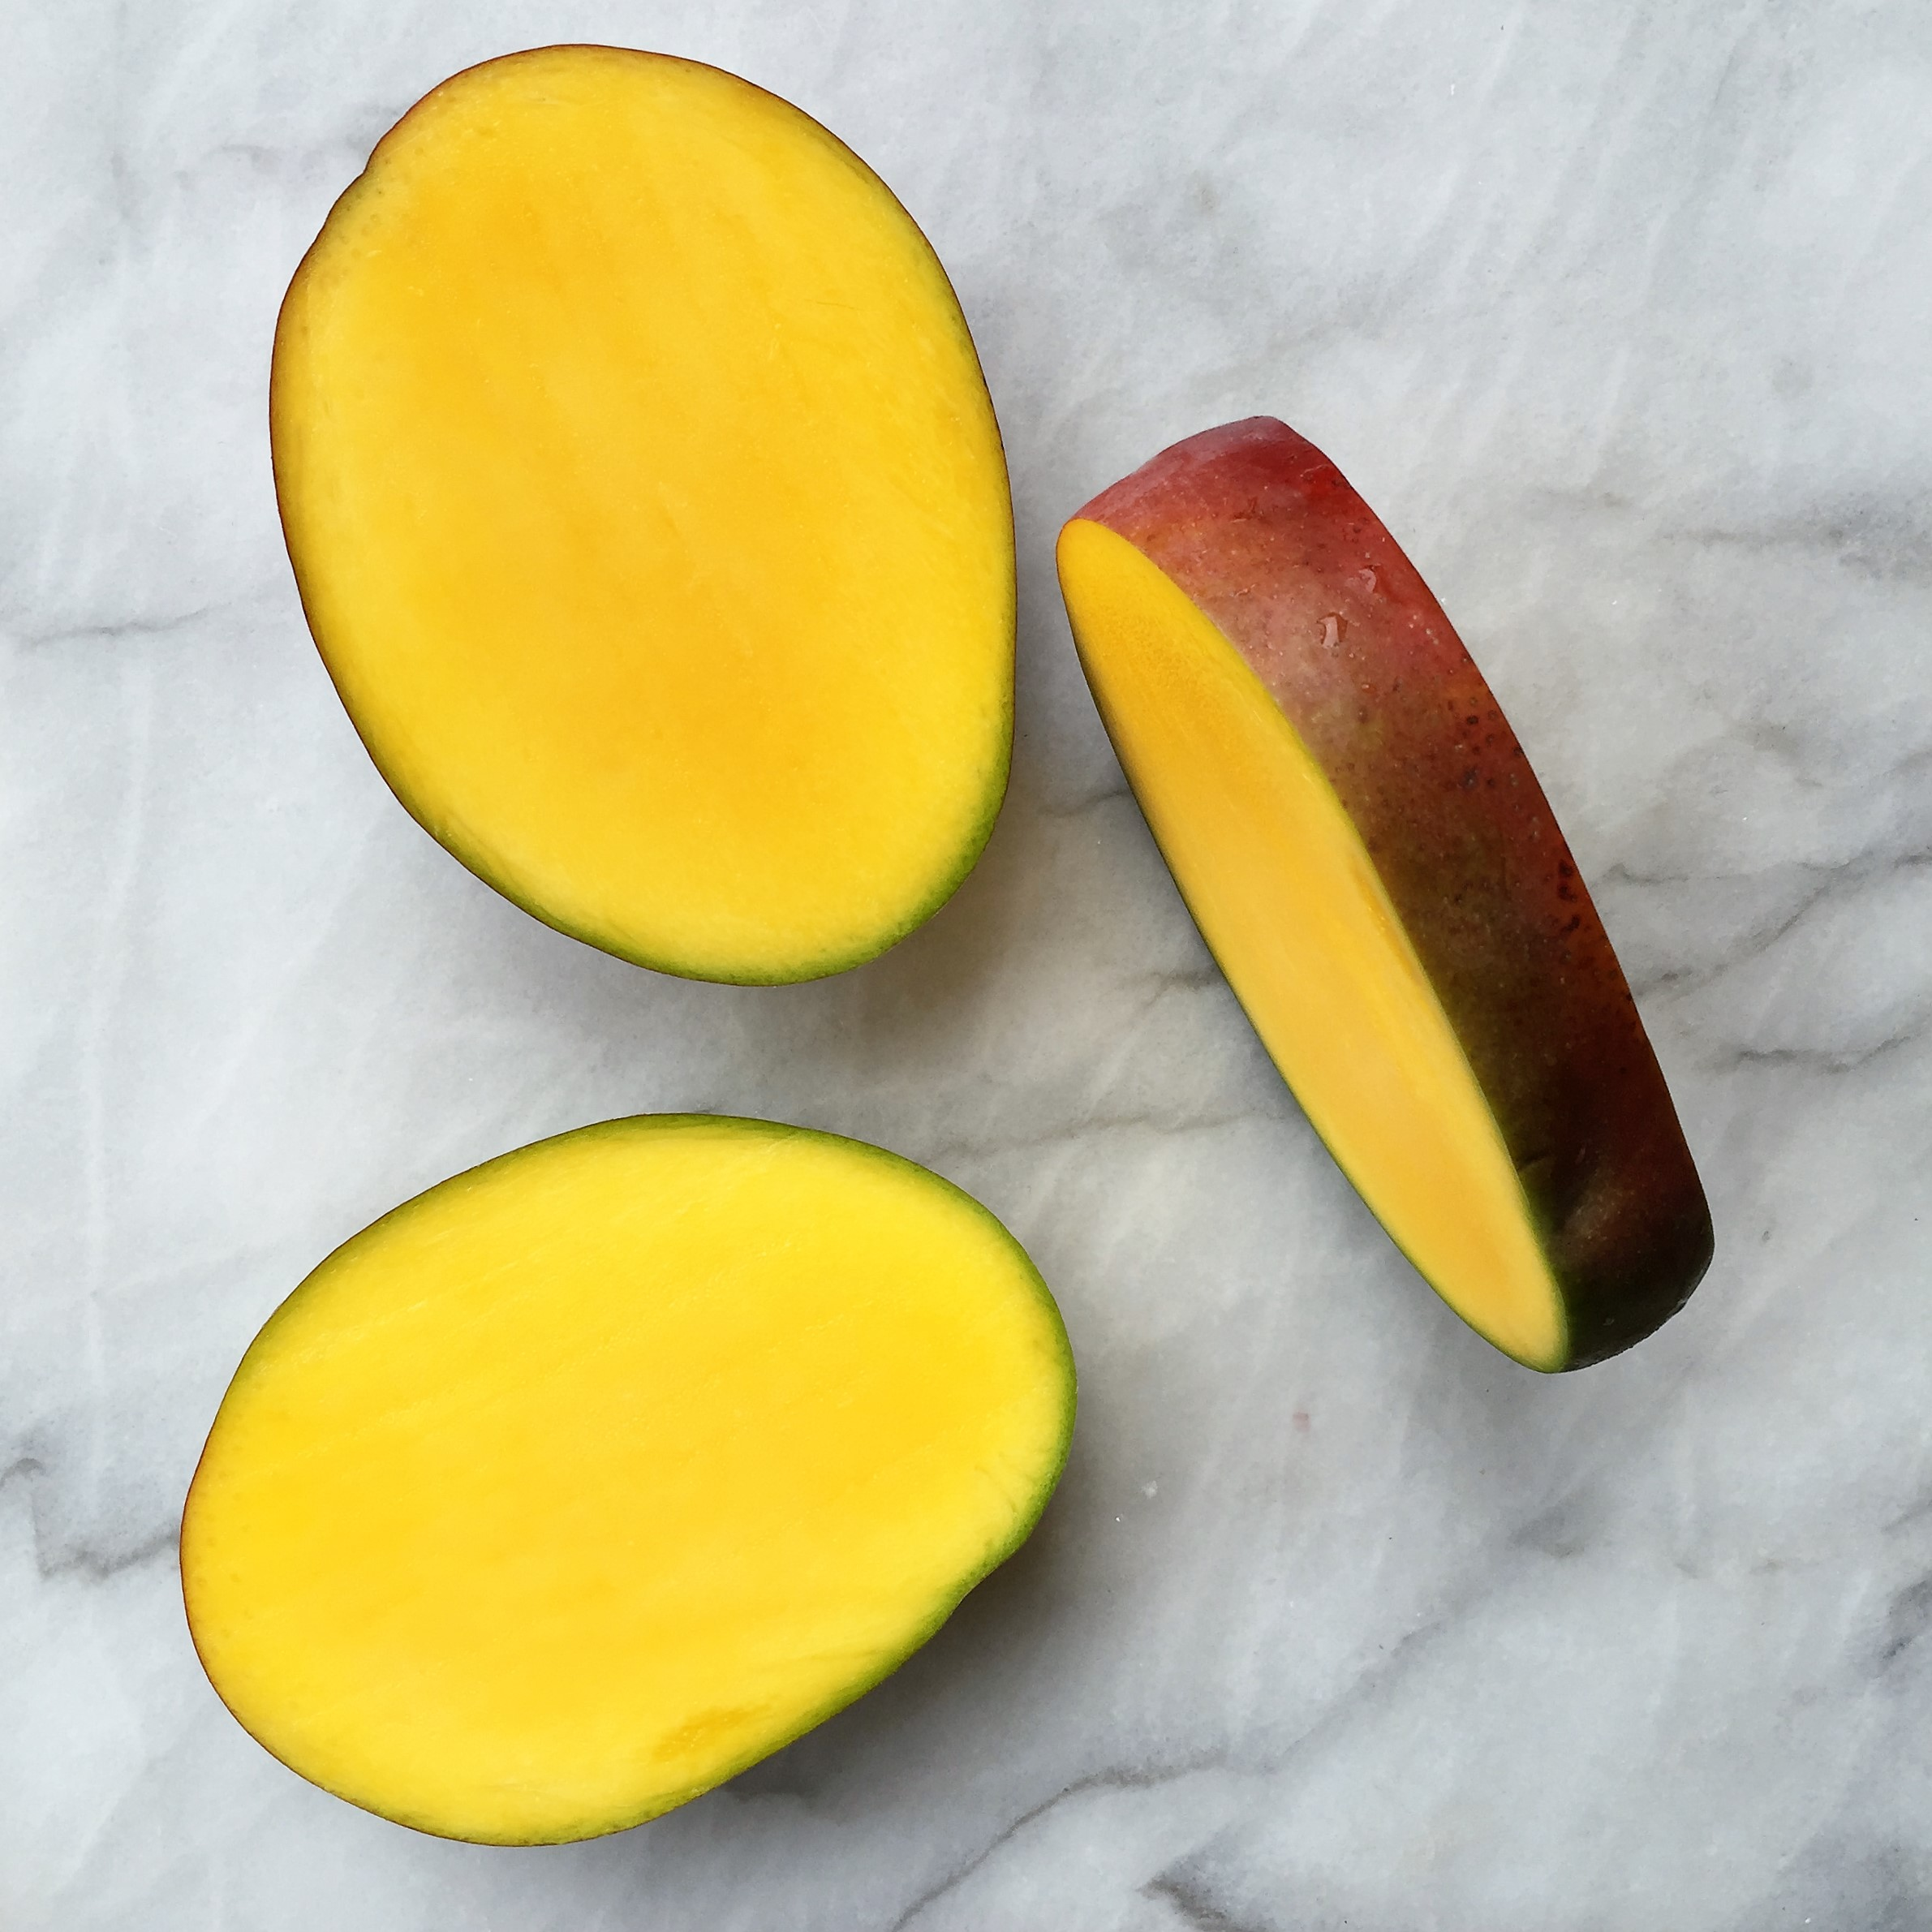 Peel the mango portion containing the seed (on right) and enjoy like a messy popsicle!